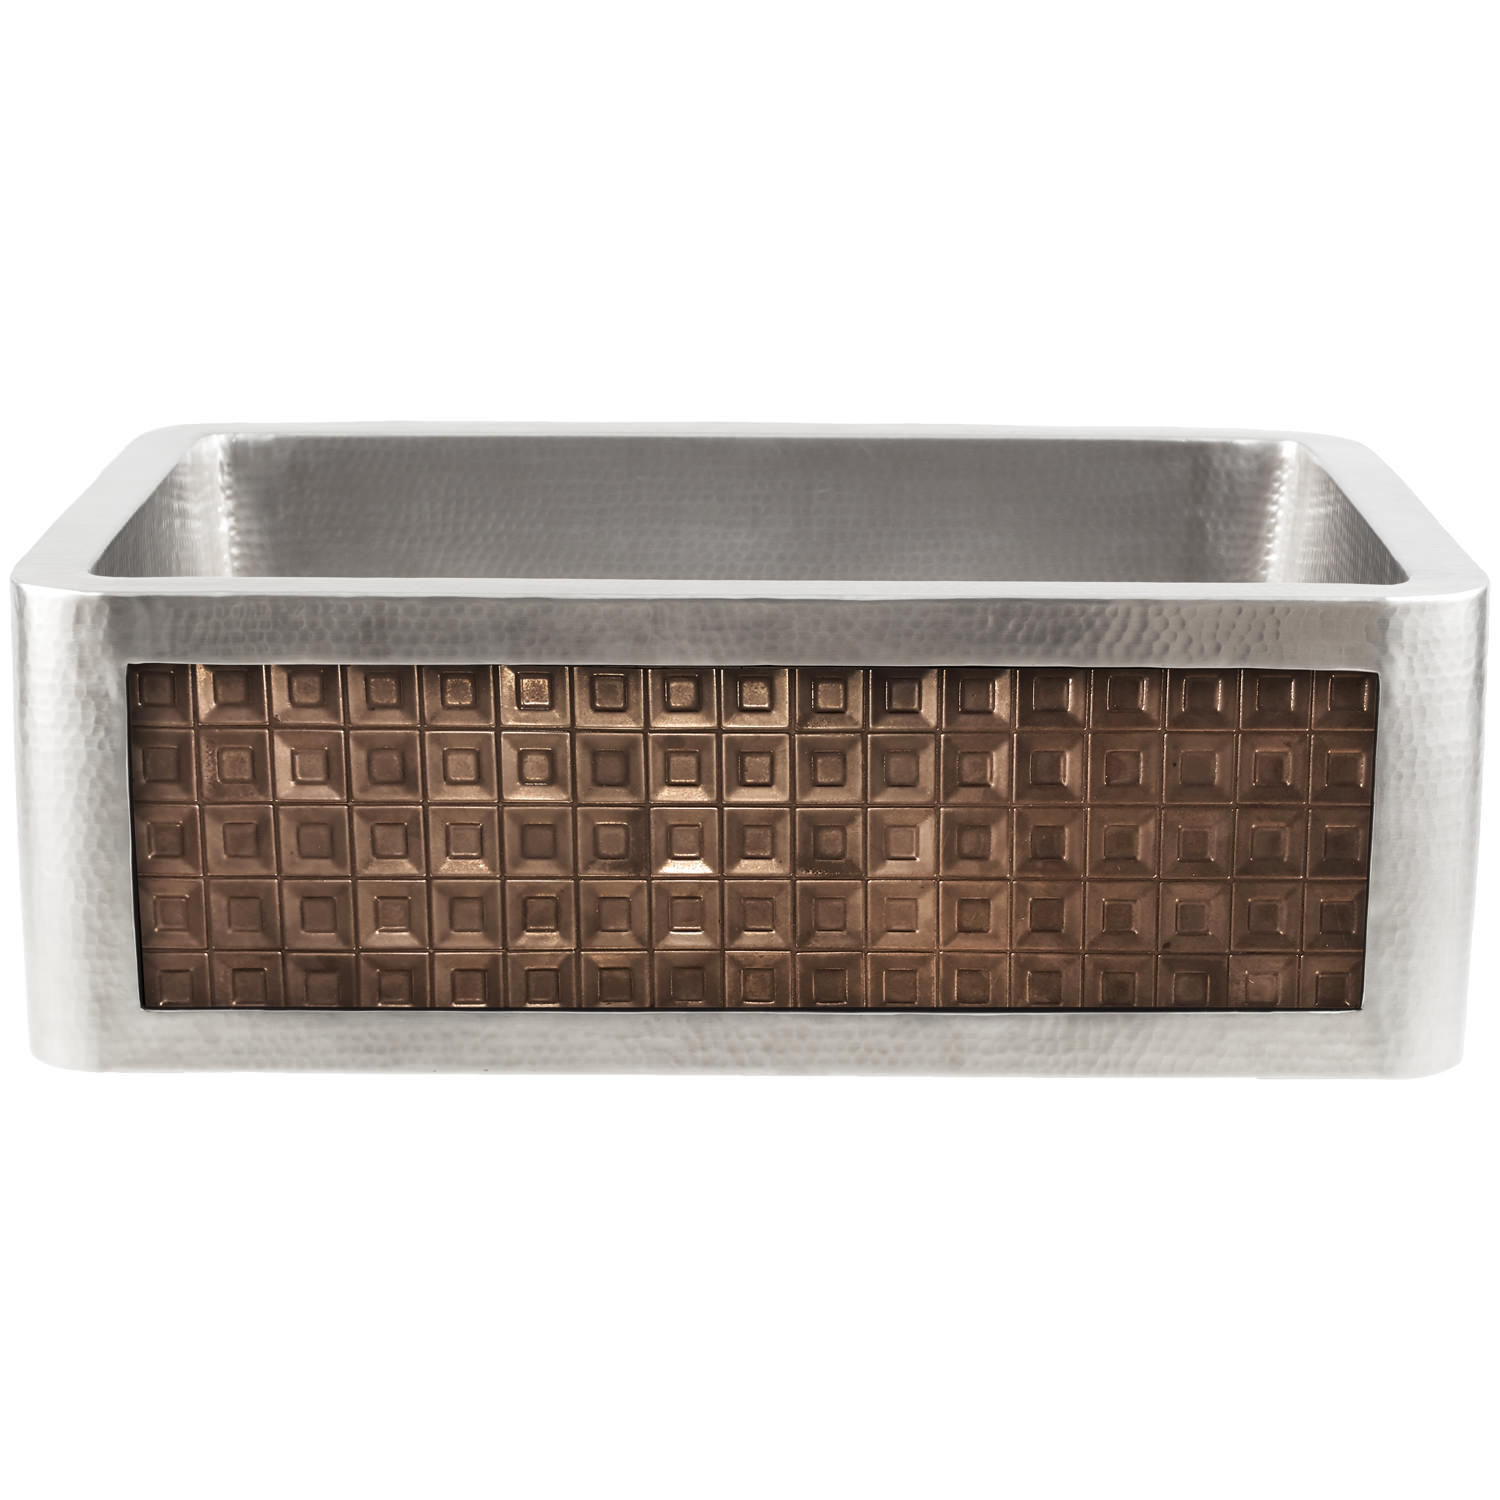 Linkasink Kitchen Farmhouse Sinks   C070 30 SS Stainless Steel Inset Apron  Front Sink   Hand Hammered   PNL202 B   Tile Bronze